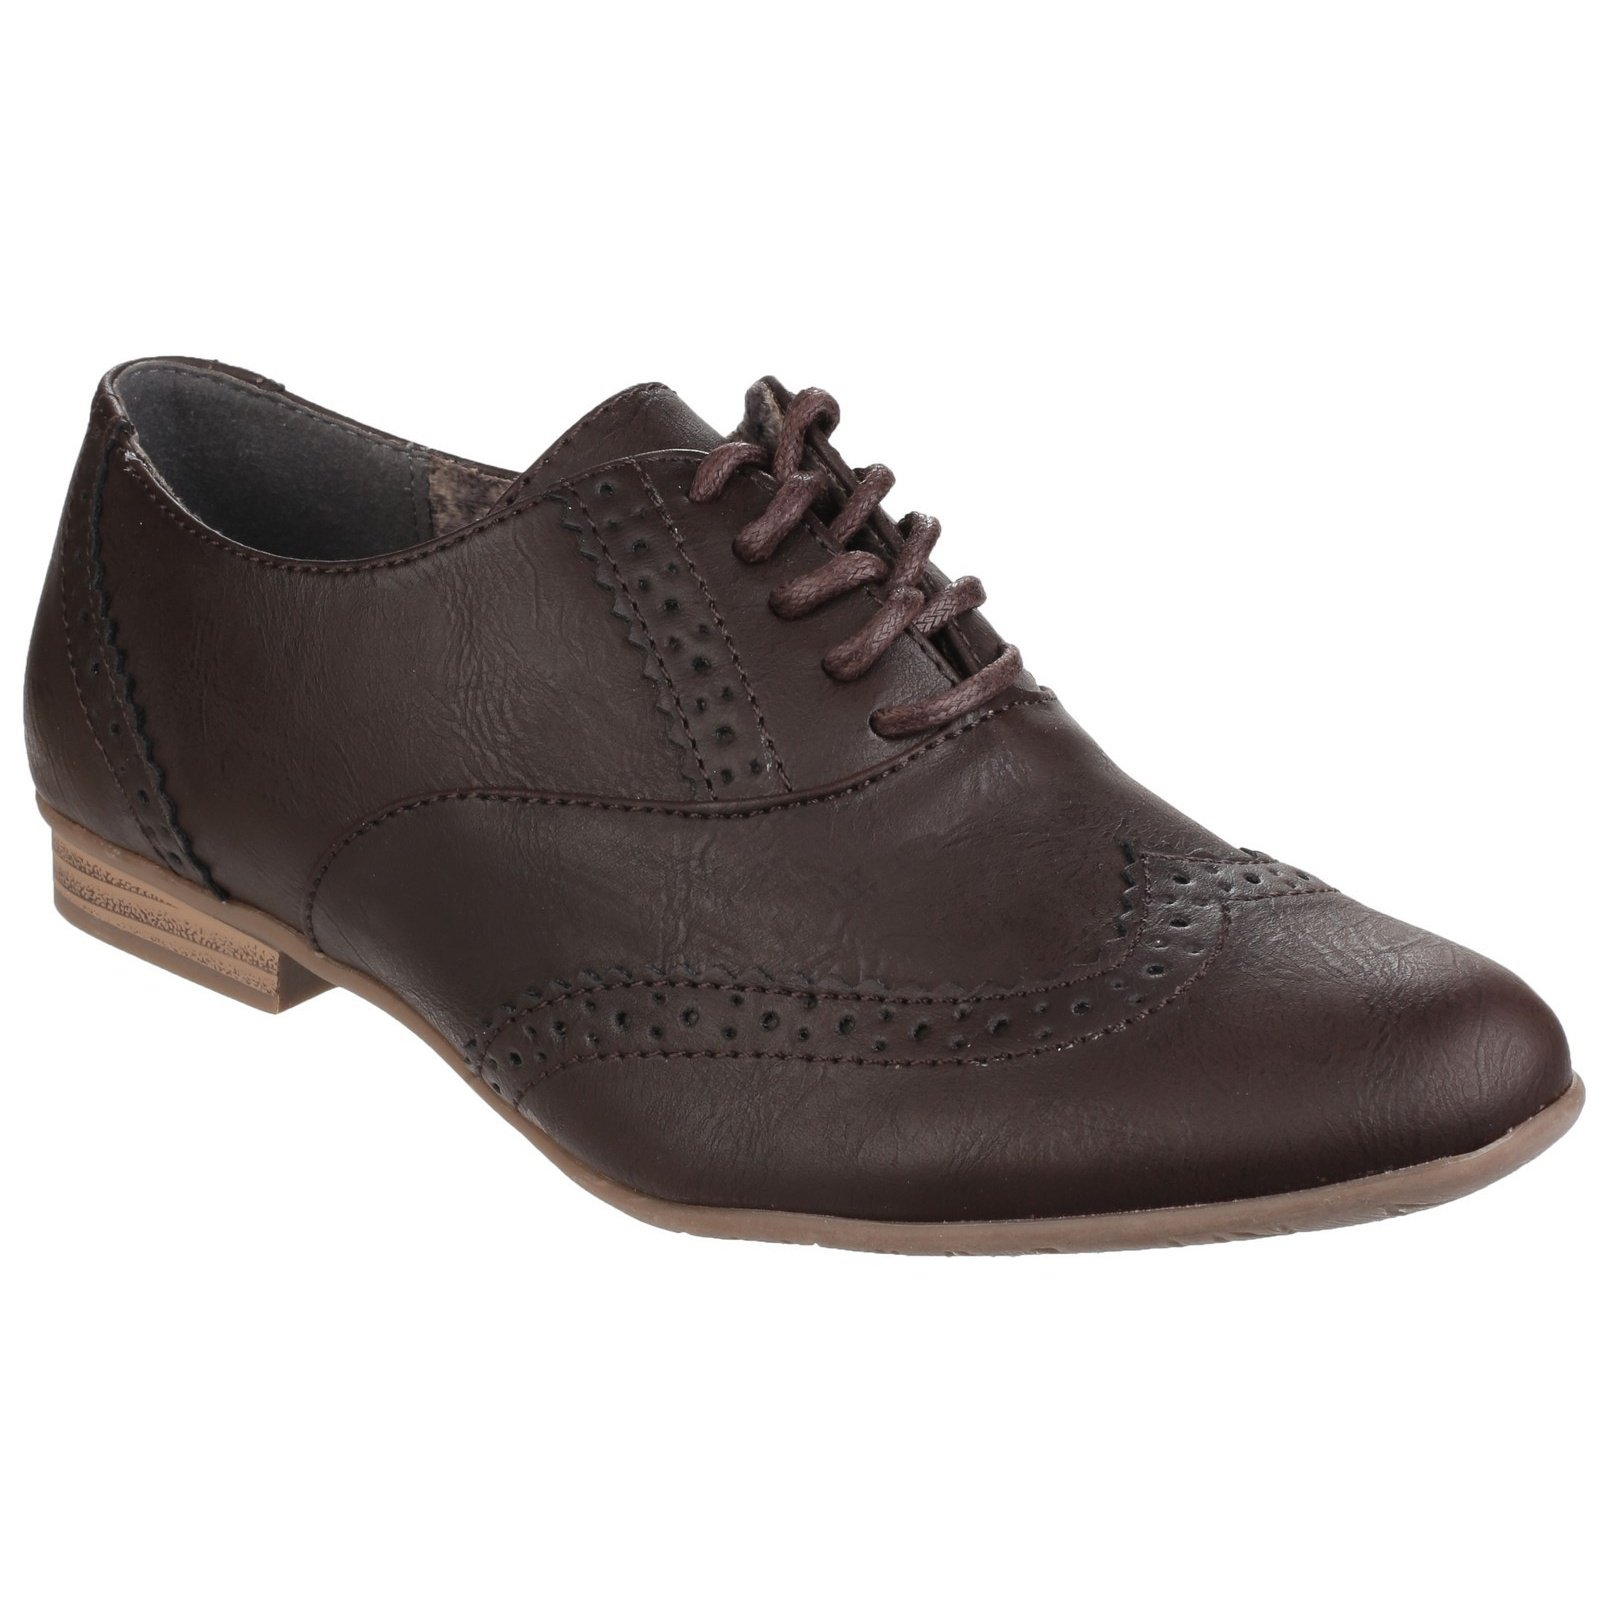 Divaz Womens/Ladies Levato Lace Up Perforated Brogues (9 US) (Brown) by Divaz